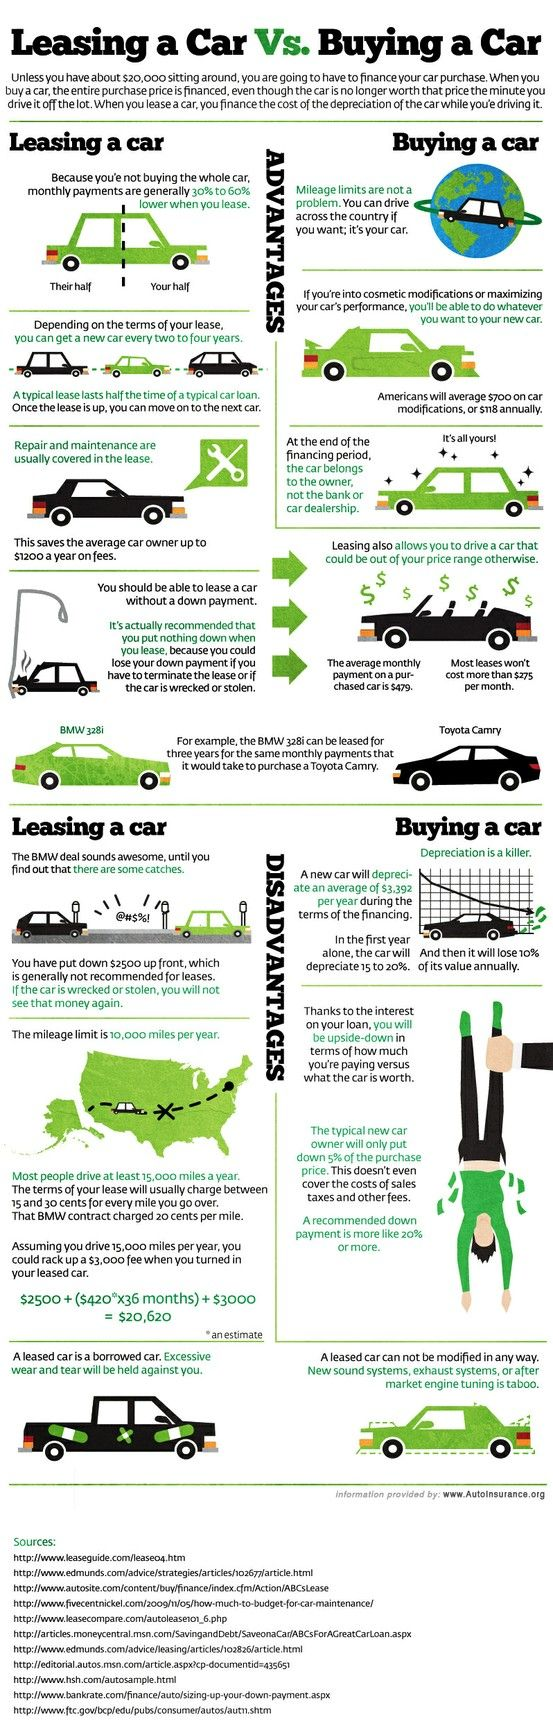 Leasing A Car Vs Buying A Car Infographic Car Lease Car